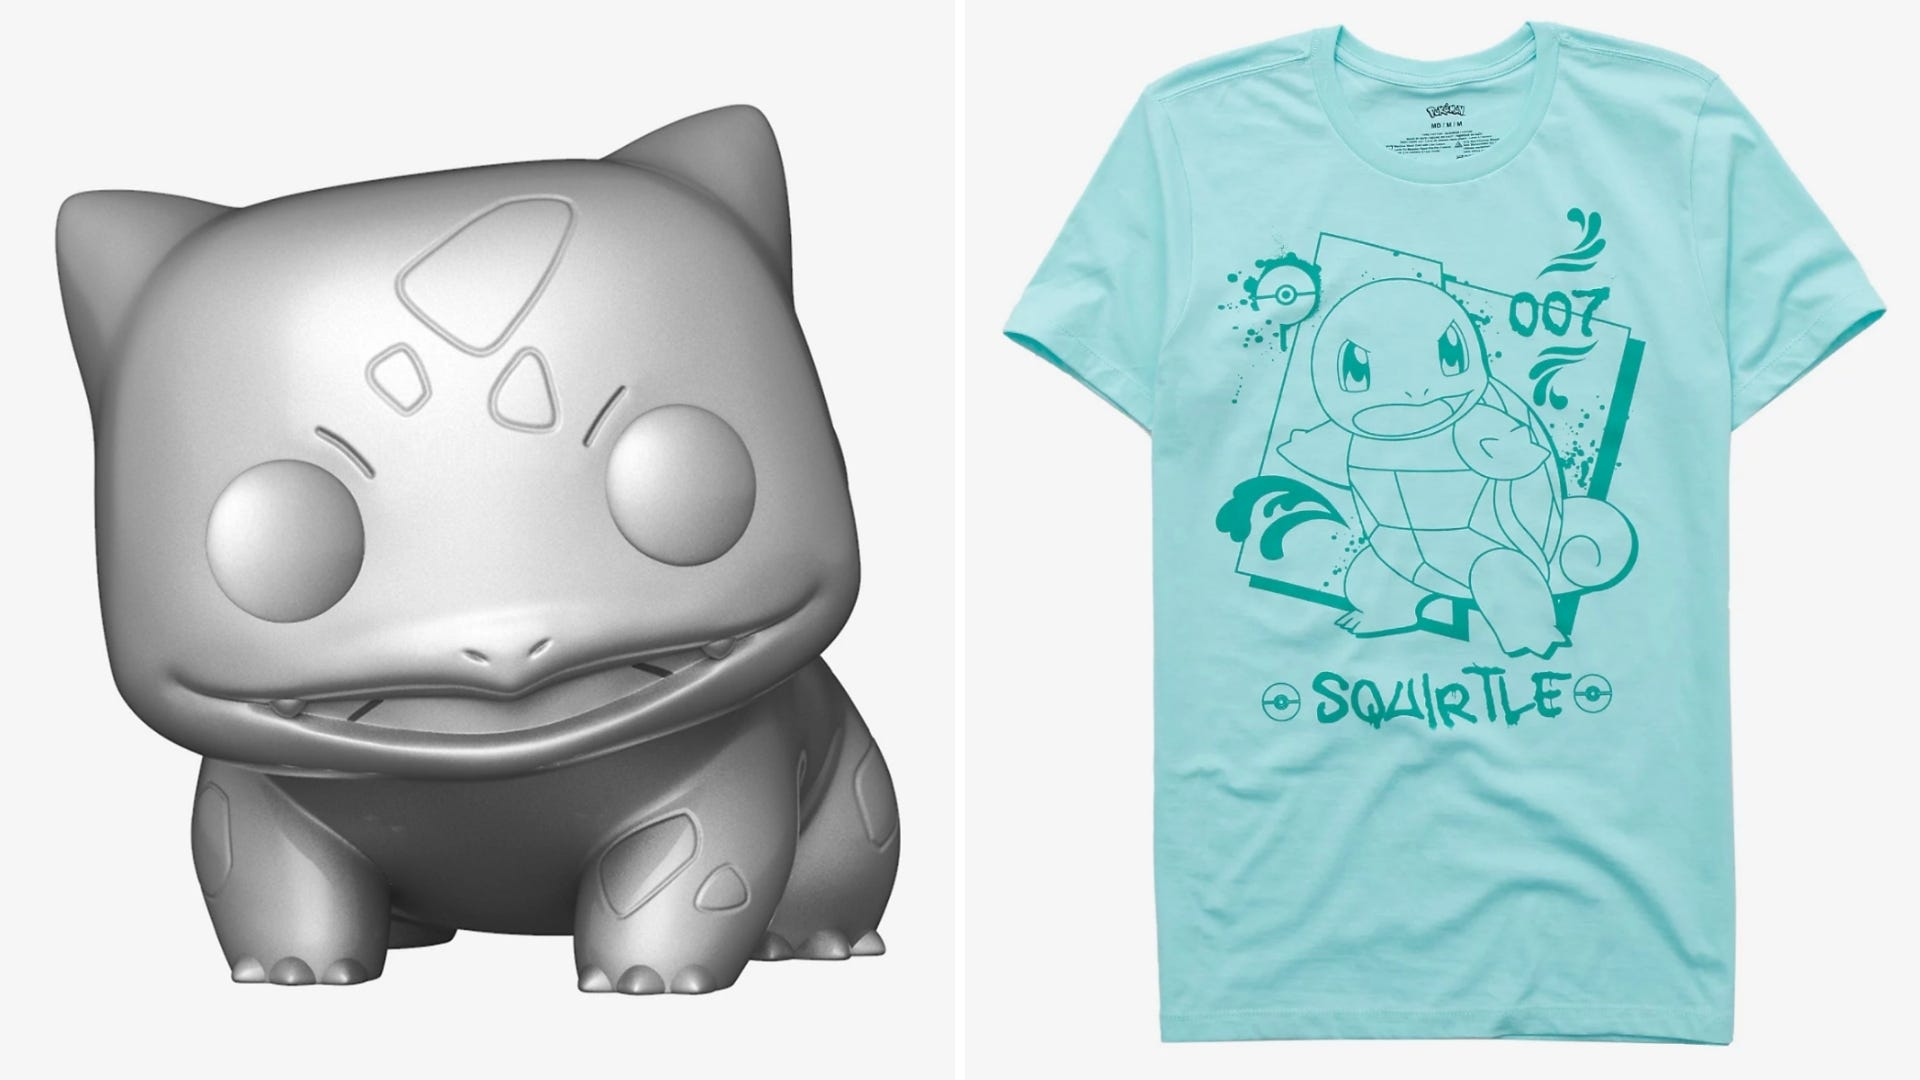 A silver Pokemon figurine and a teal shirt with a Pokemon on it.